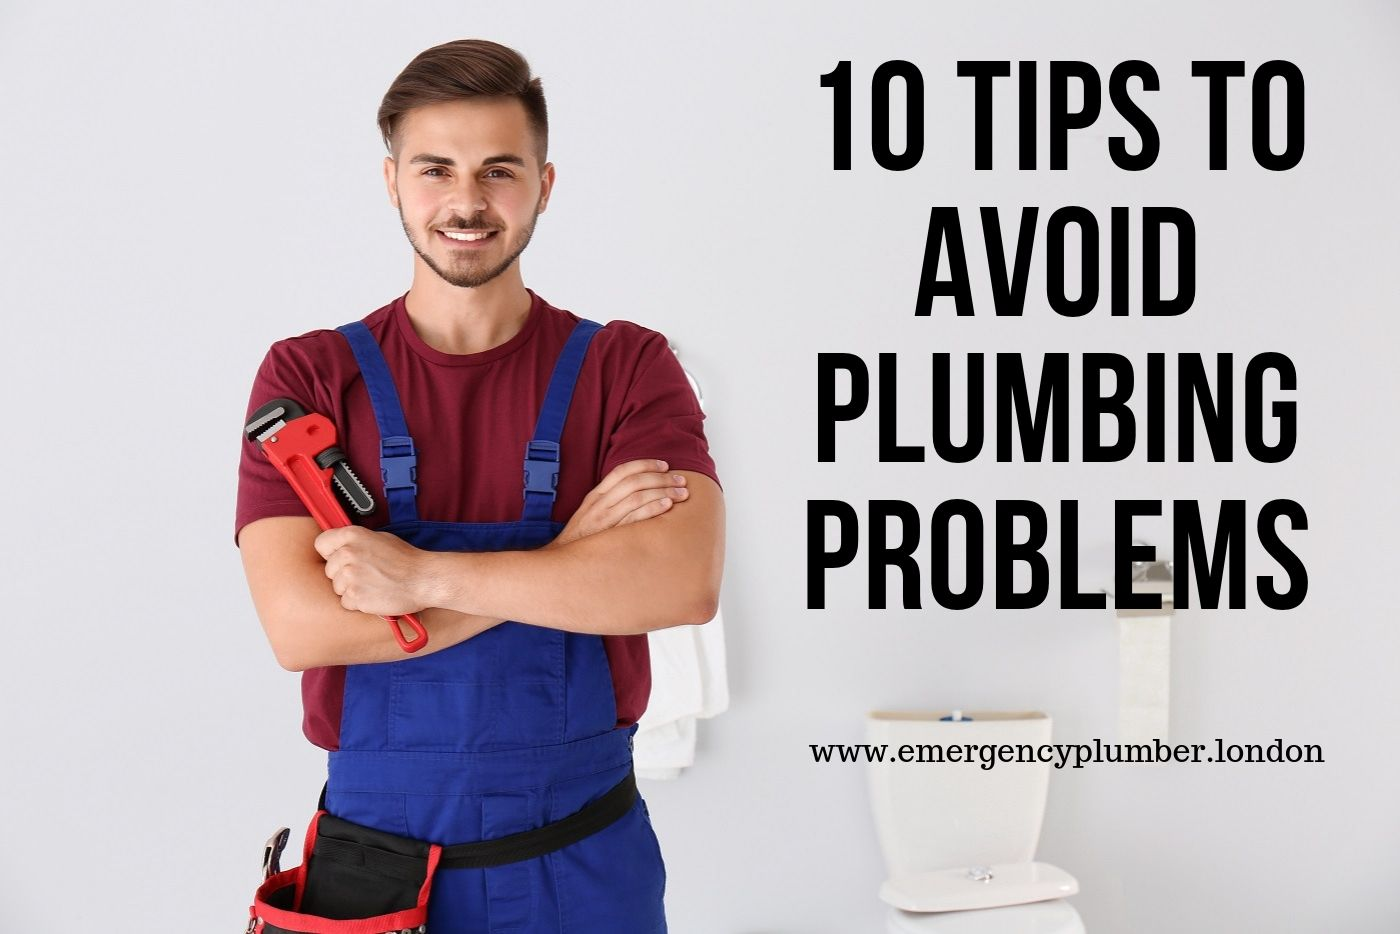 10 Tips To Avoid Plumbing Problems